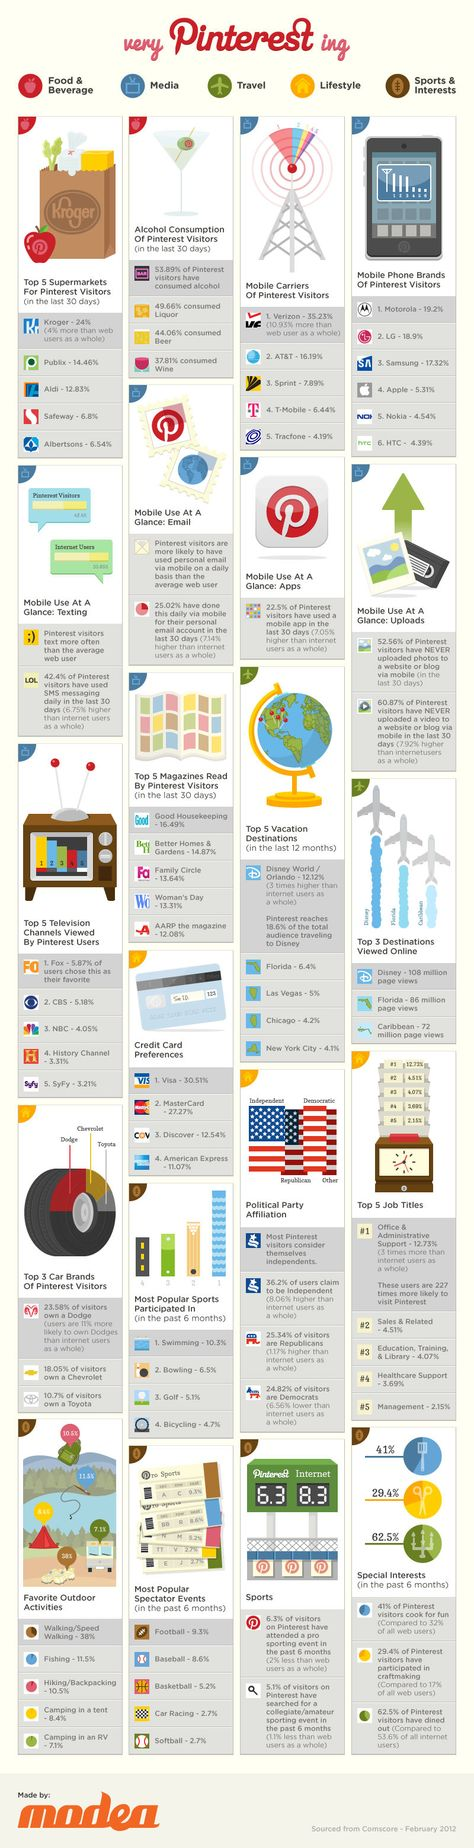 Who's Using Pinterest Anyway? [INFOGRAPHIC] based on Feb. 2012 data